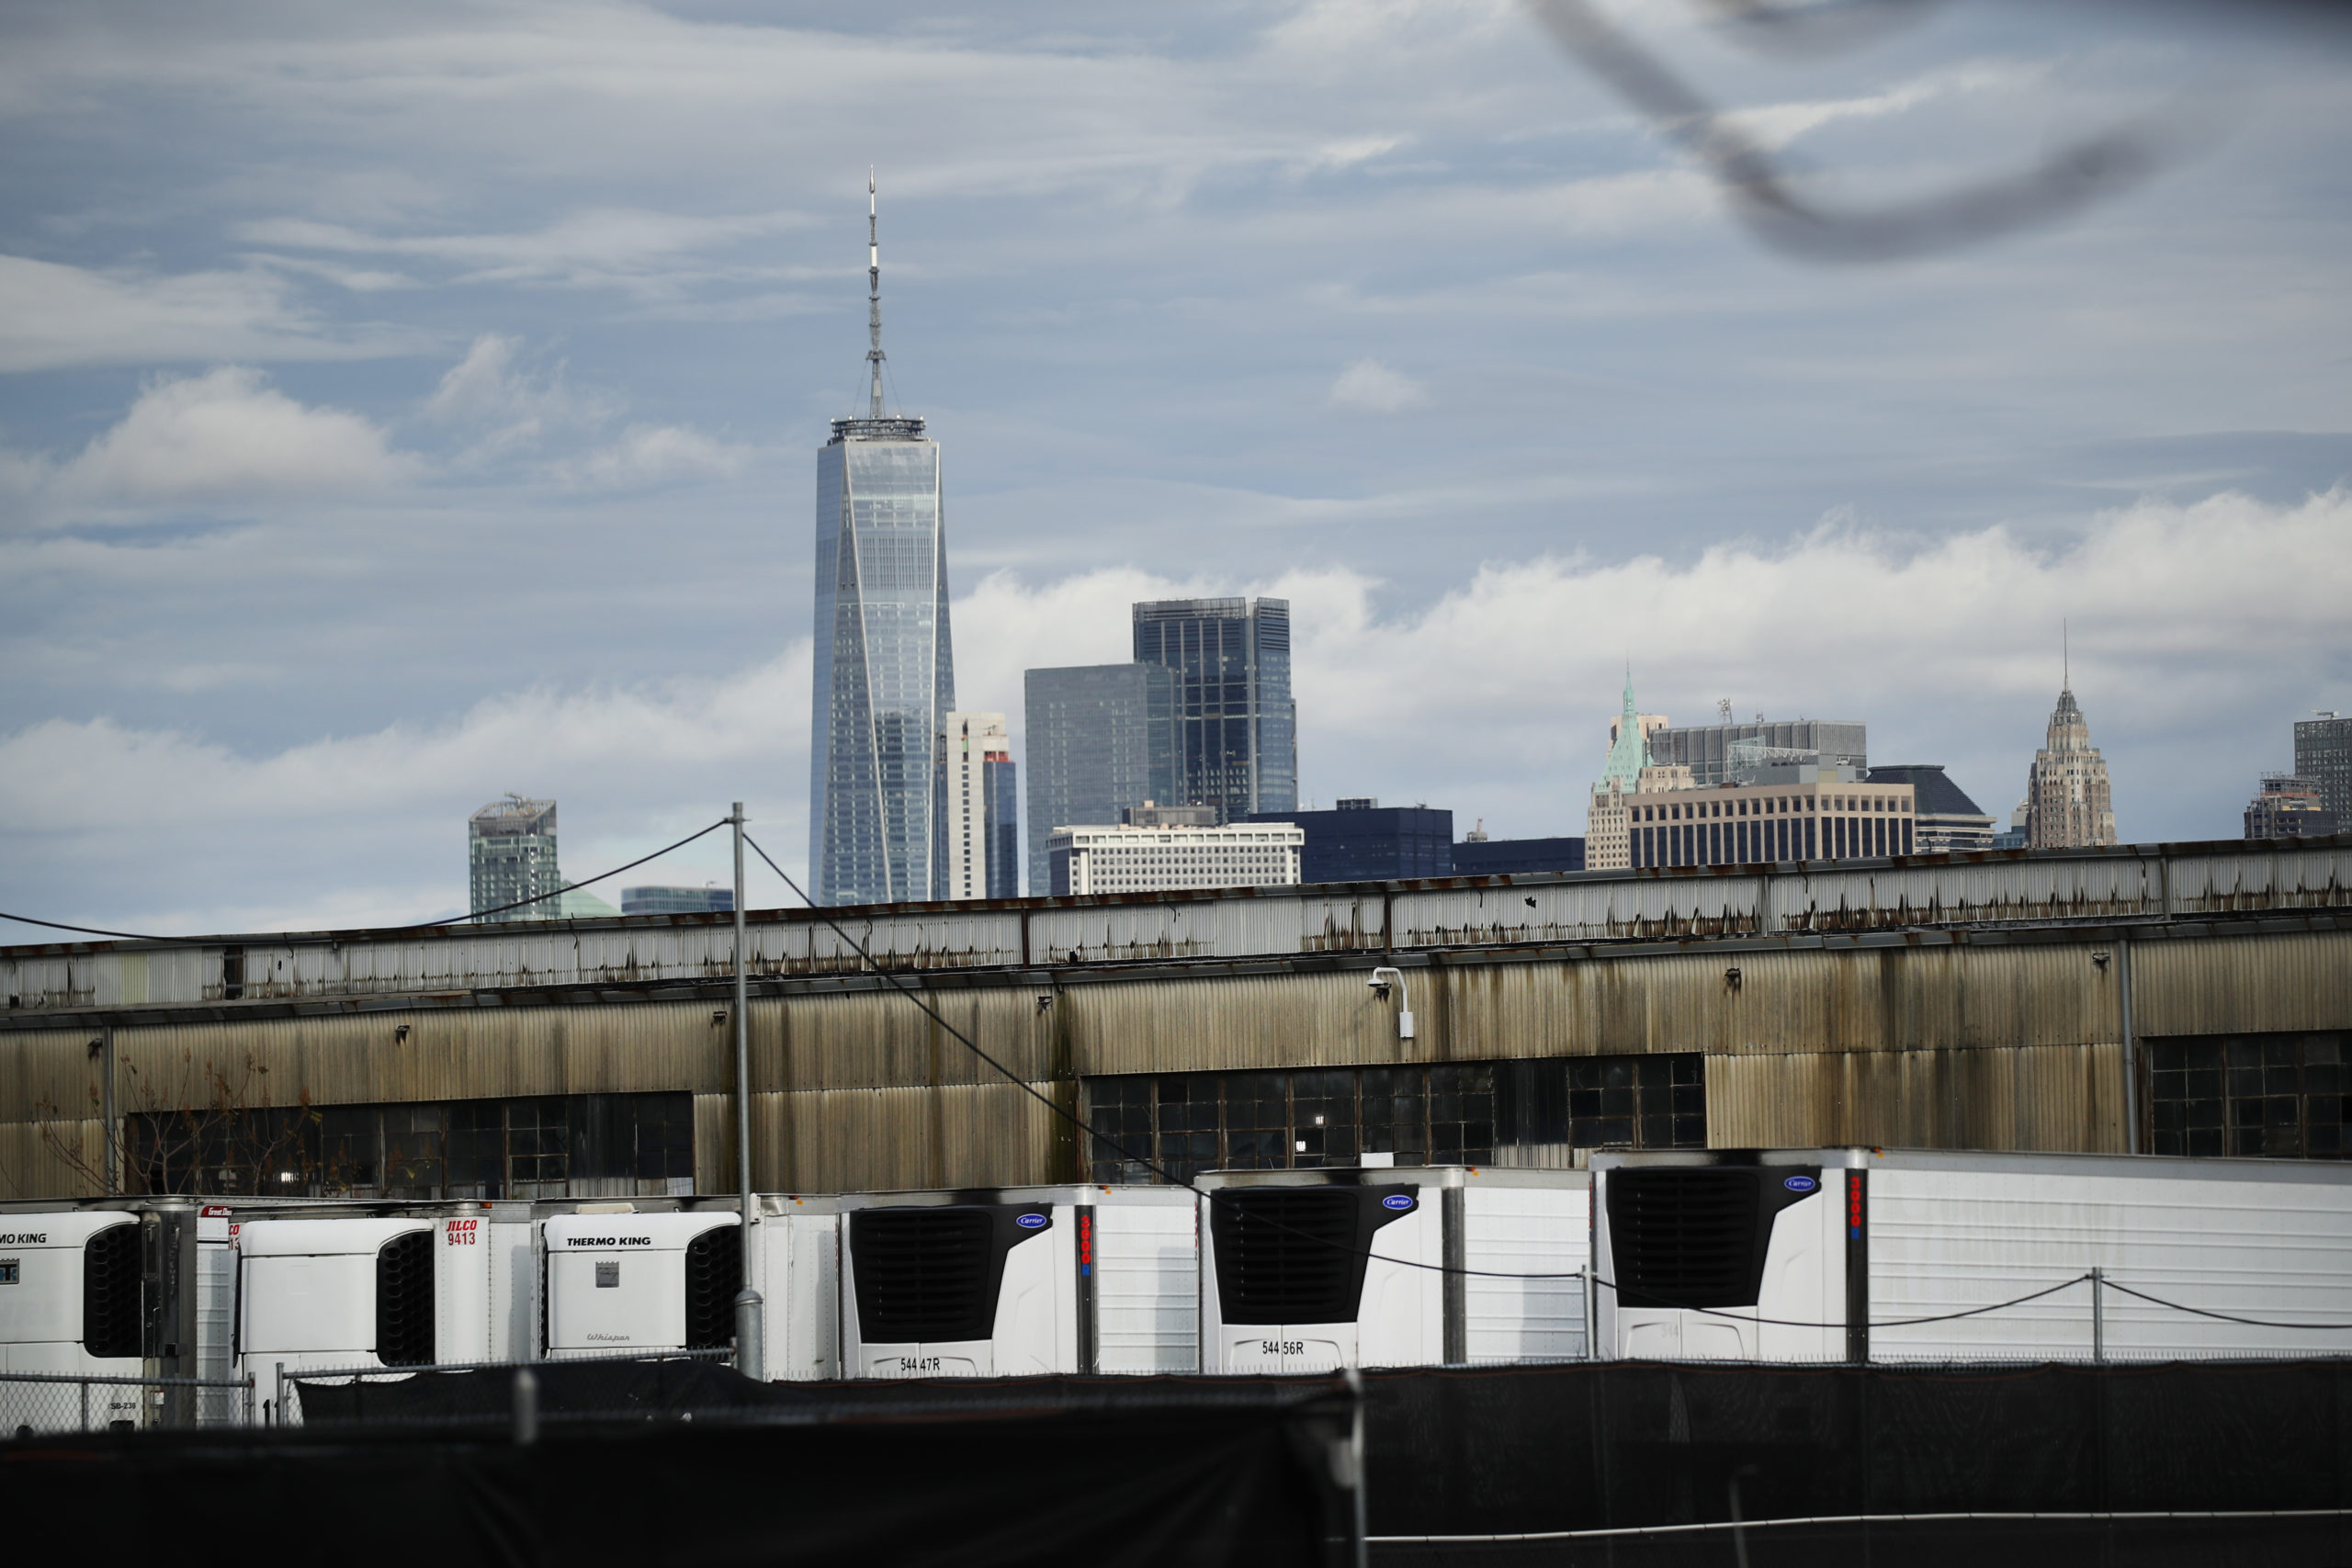 Refrigerated morgue trailers believed to be holding the bodies of people who died of COVID-19 are seen at South Brooklyn Marine Terminal on November 23, 2020 in New York City. (Photo by Spencer Platt/Getty Images)